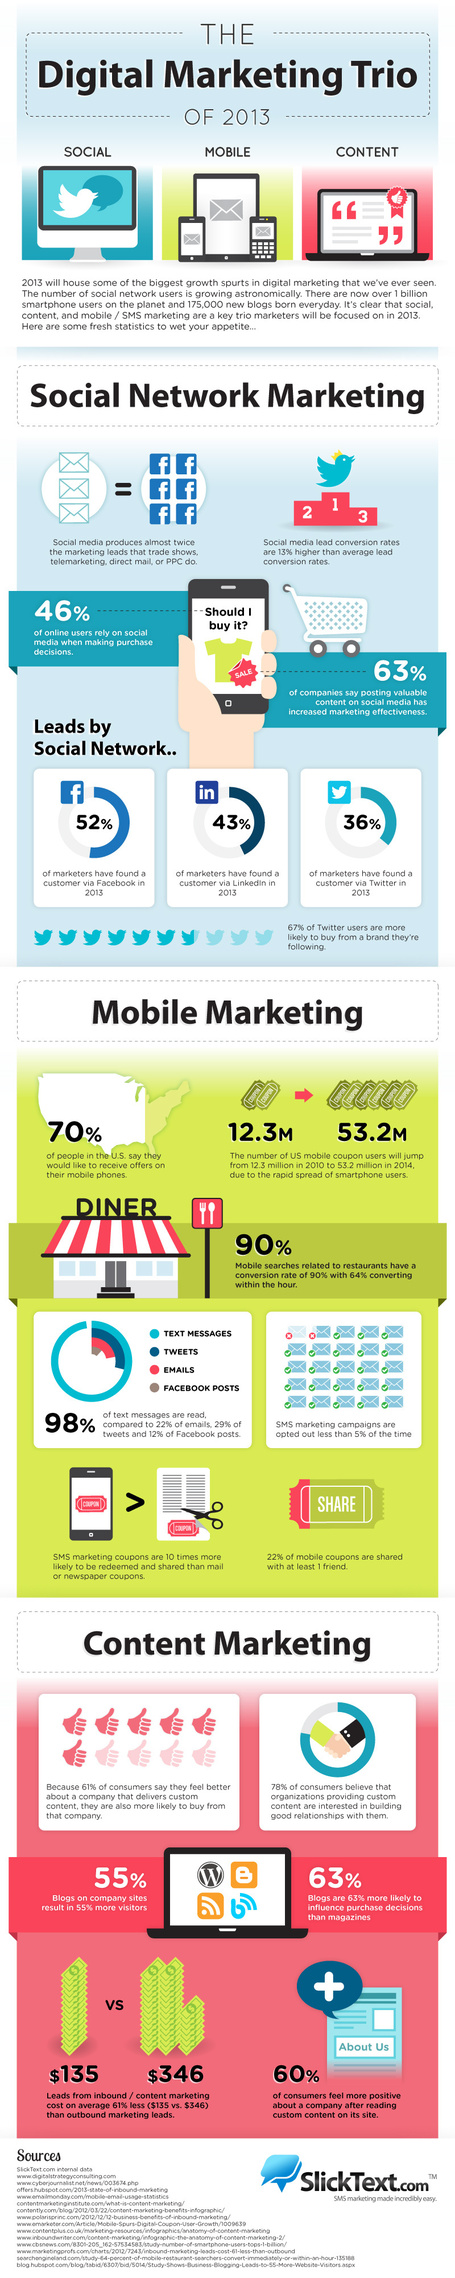 The Digital Marketing Trio Of 2013 [Infographic] | Online Marketing Tools and Tips | Scoop.it